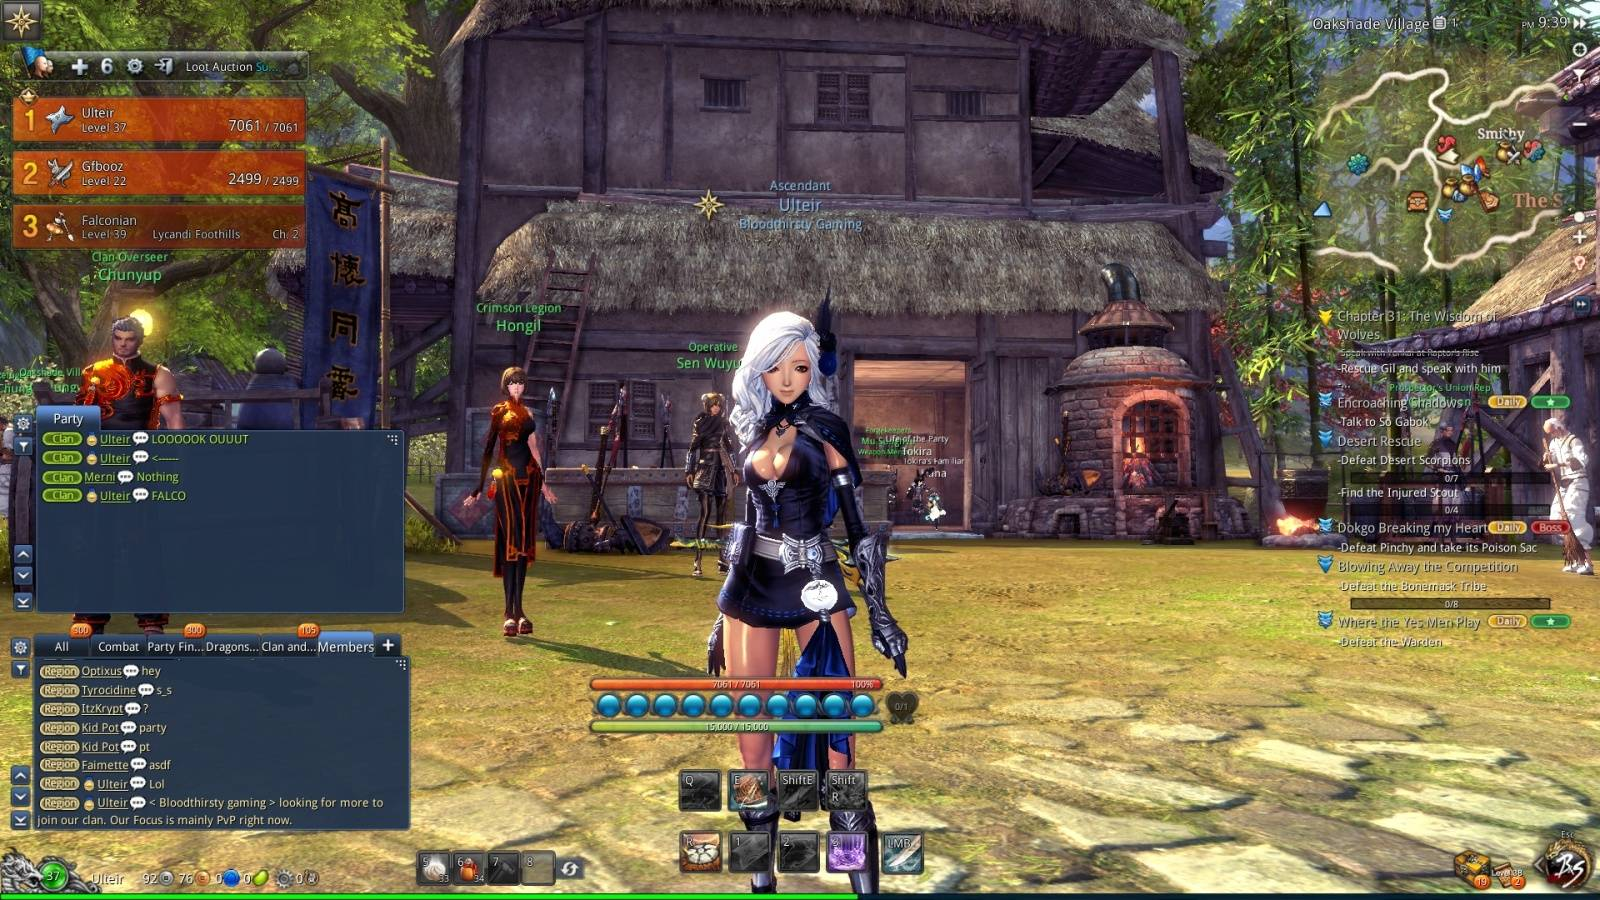 download Blade and soul